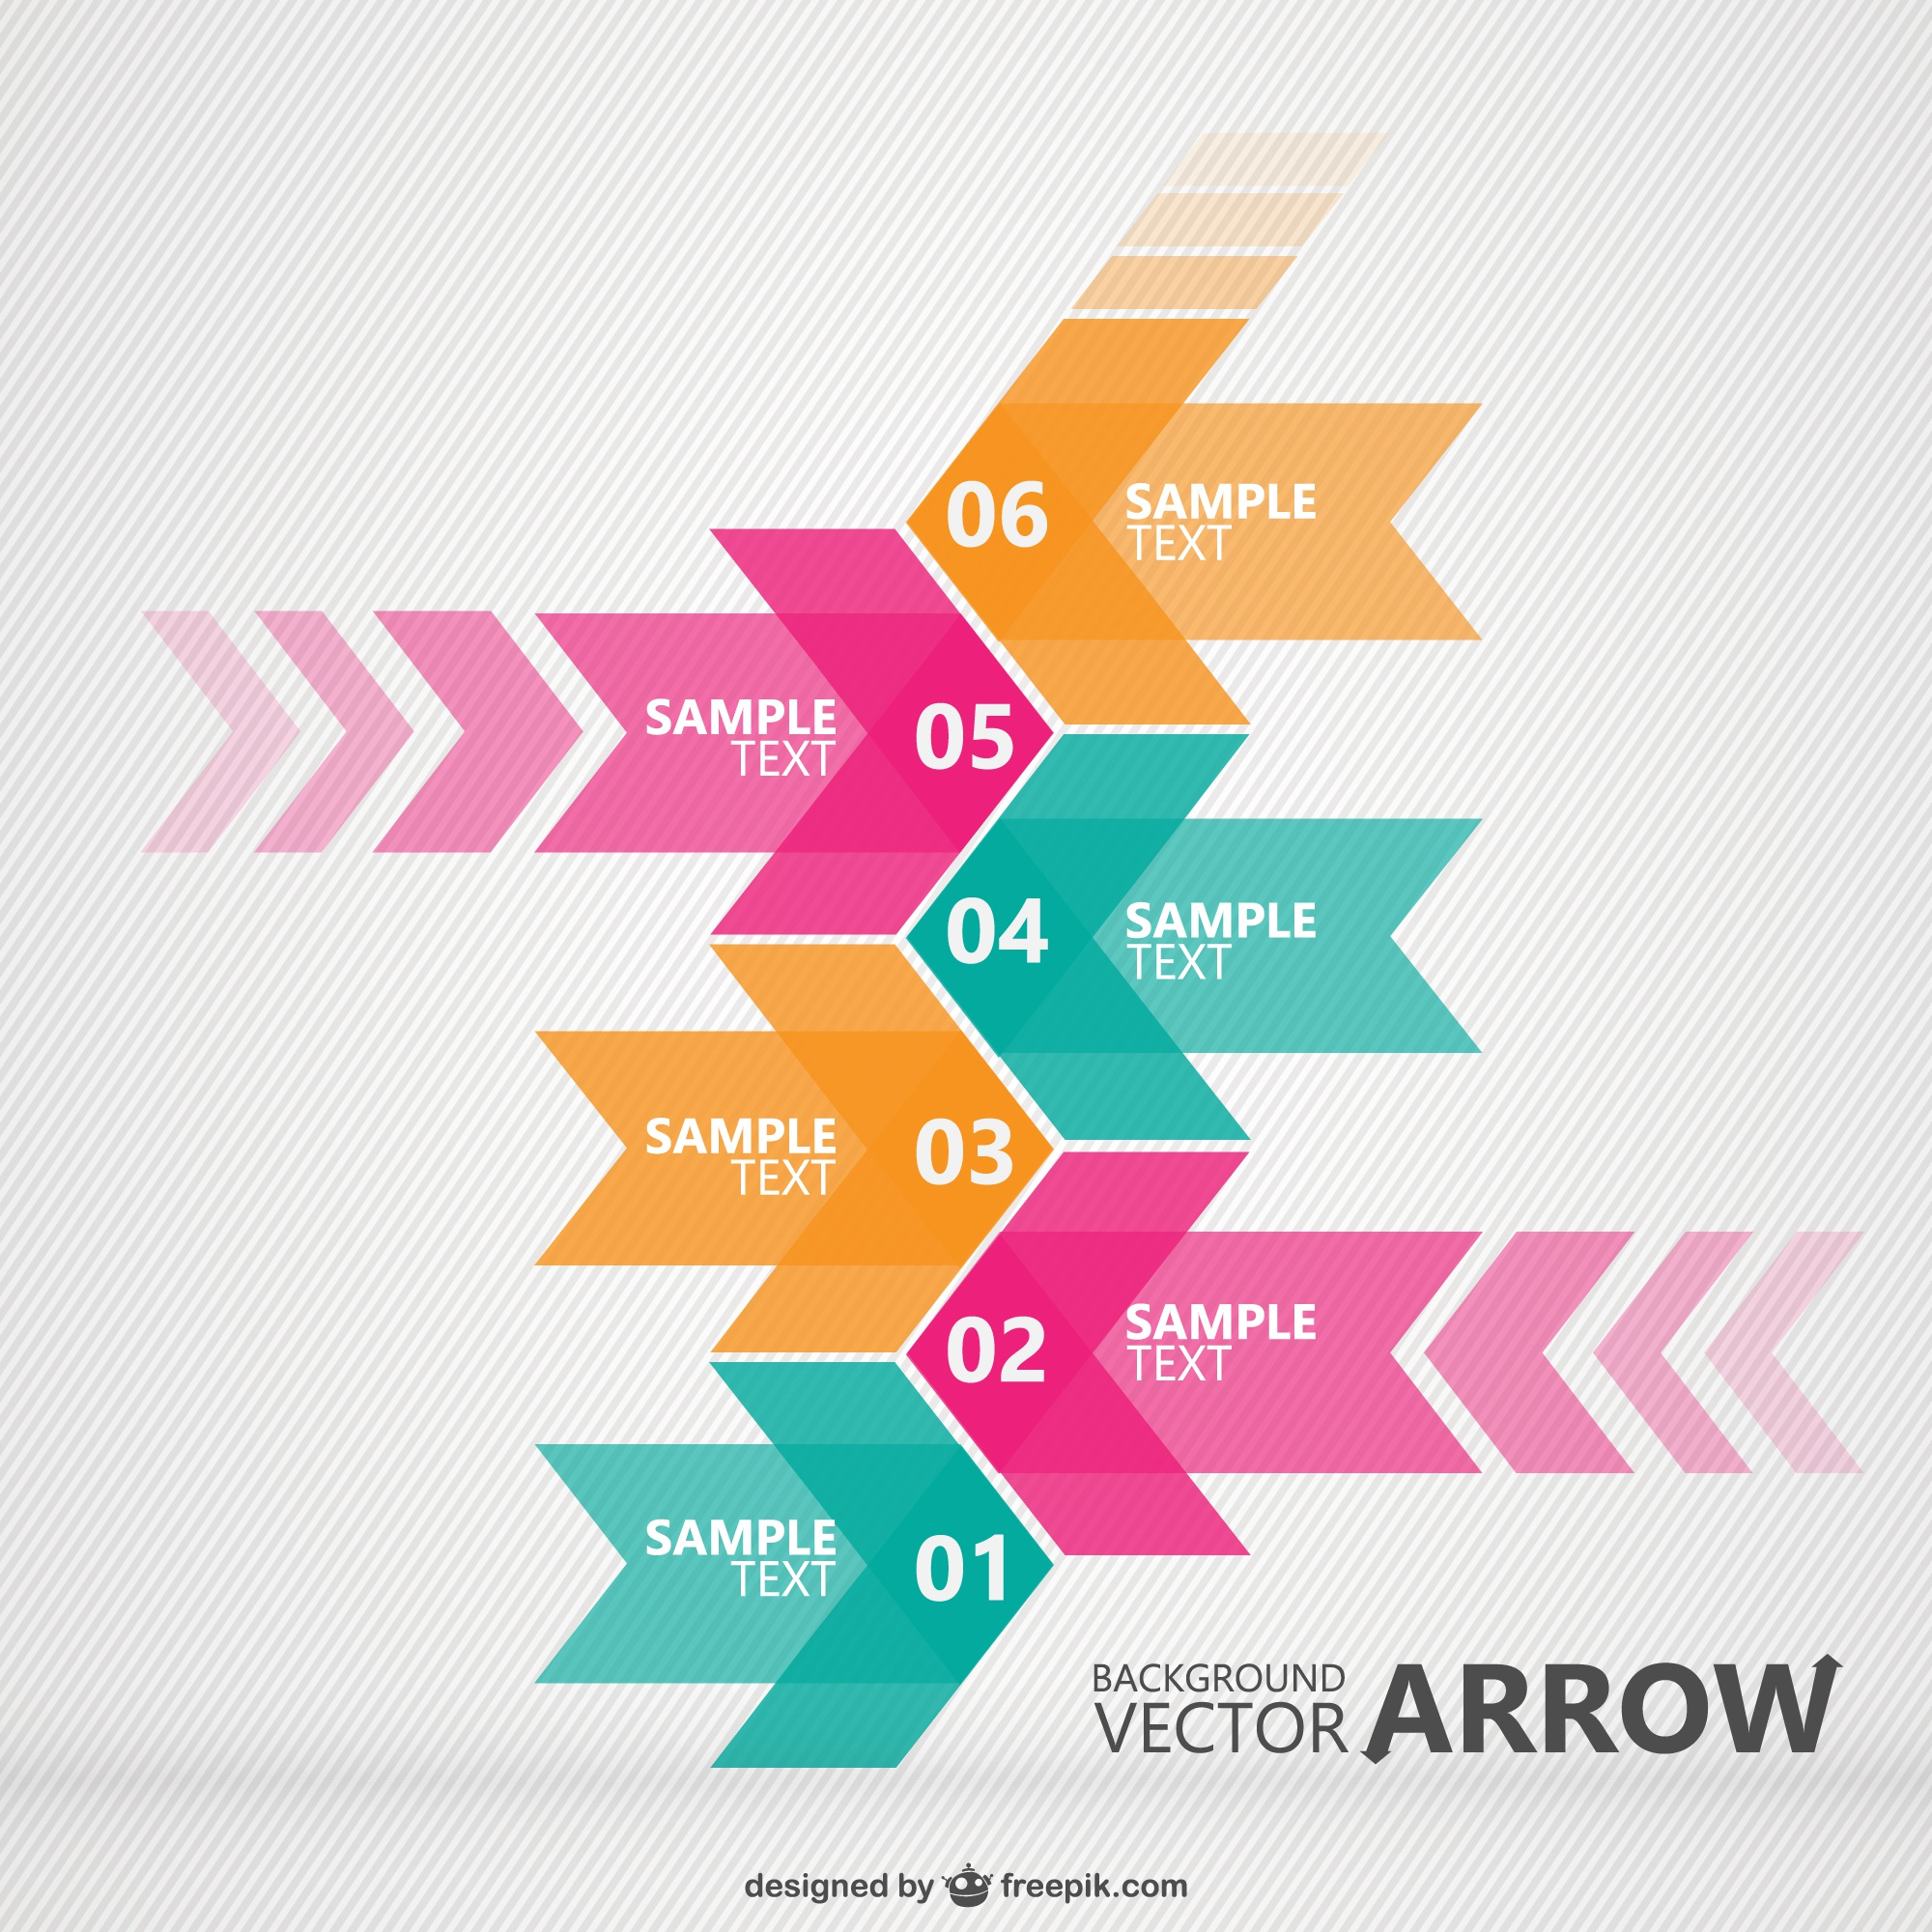 Background retro arrows design